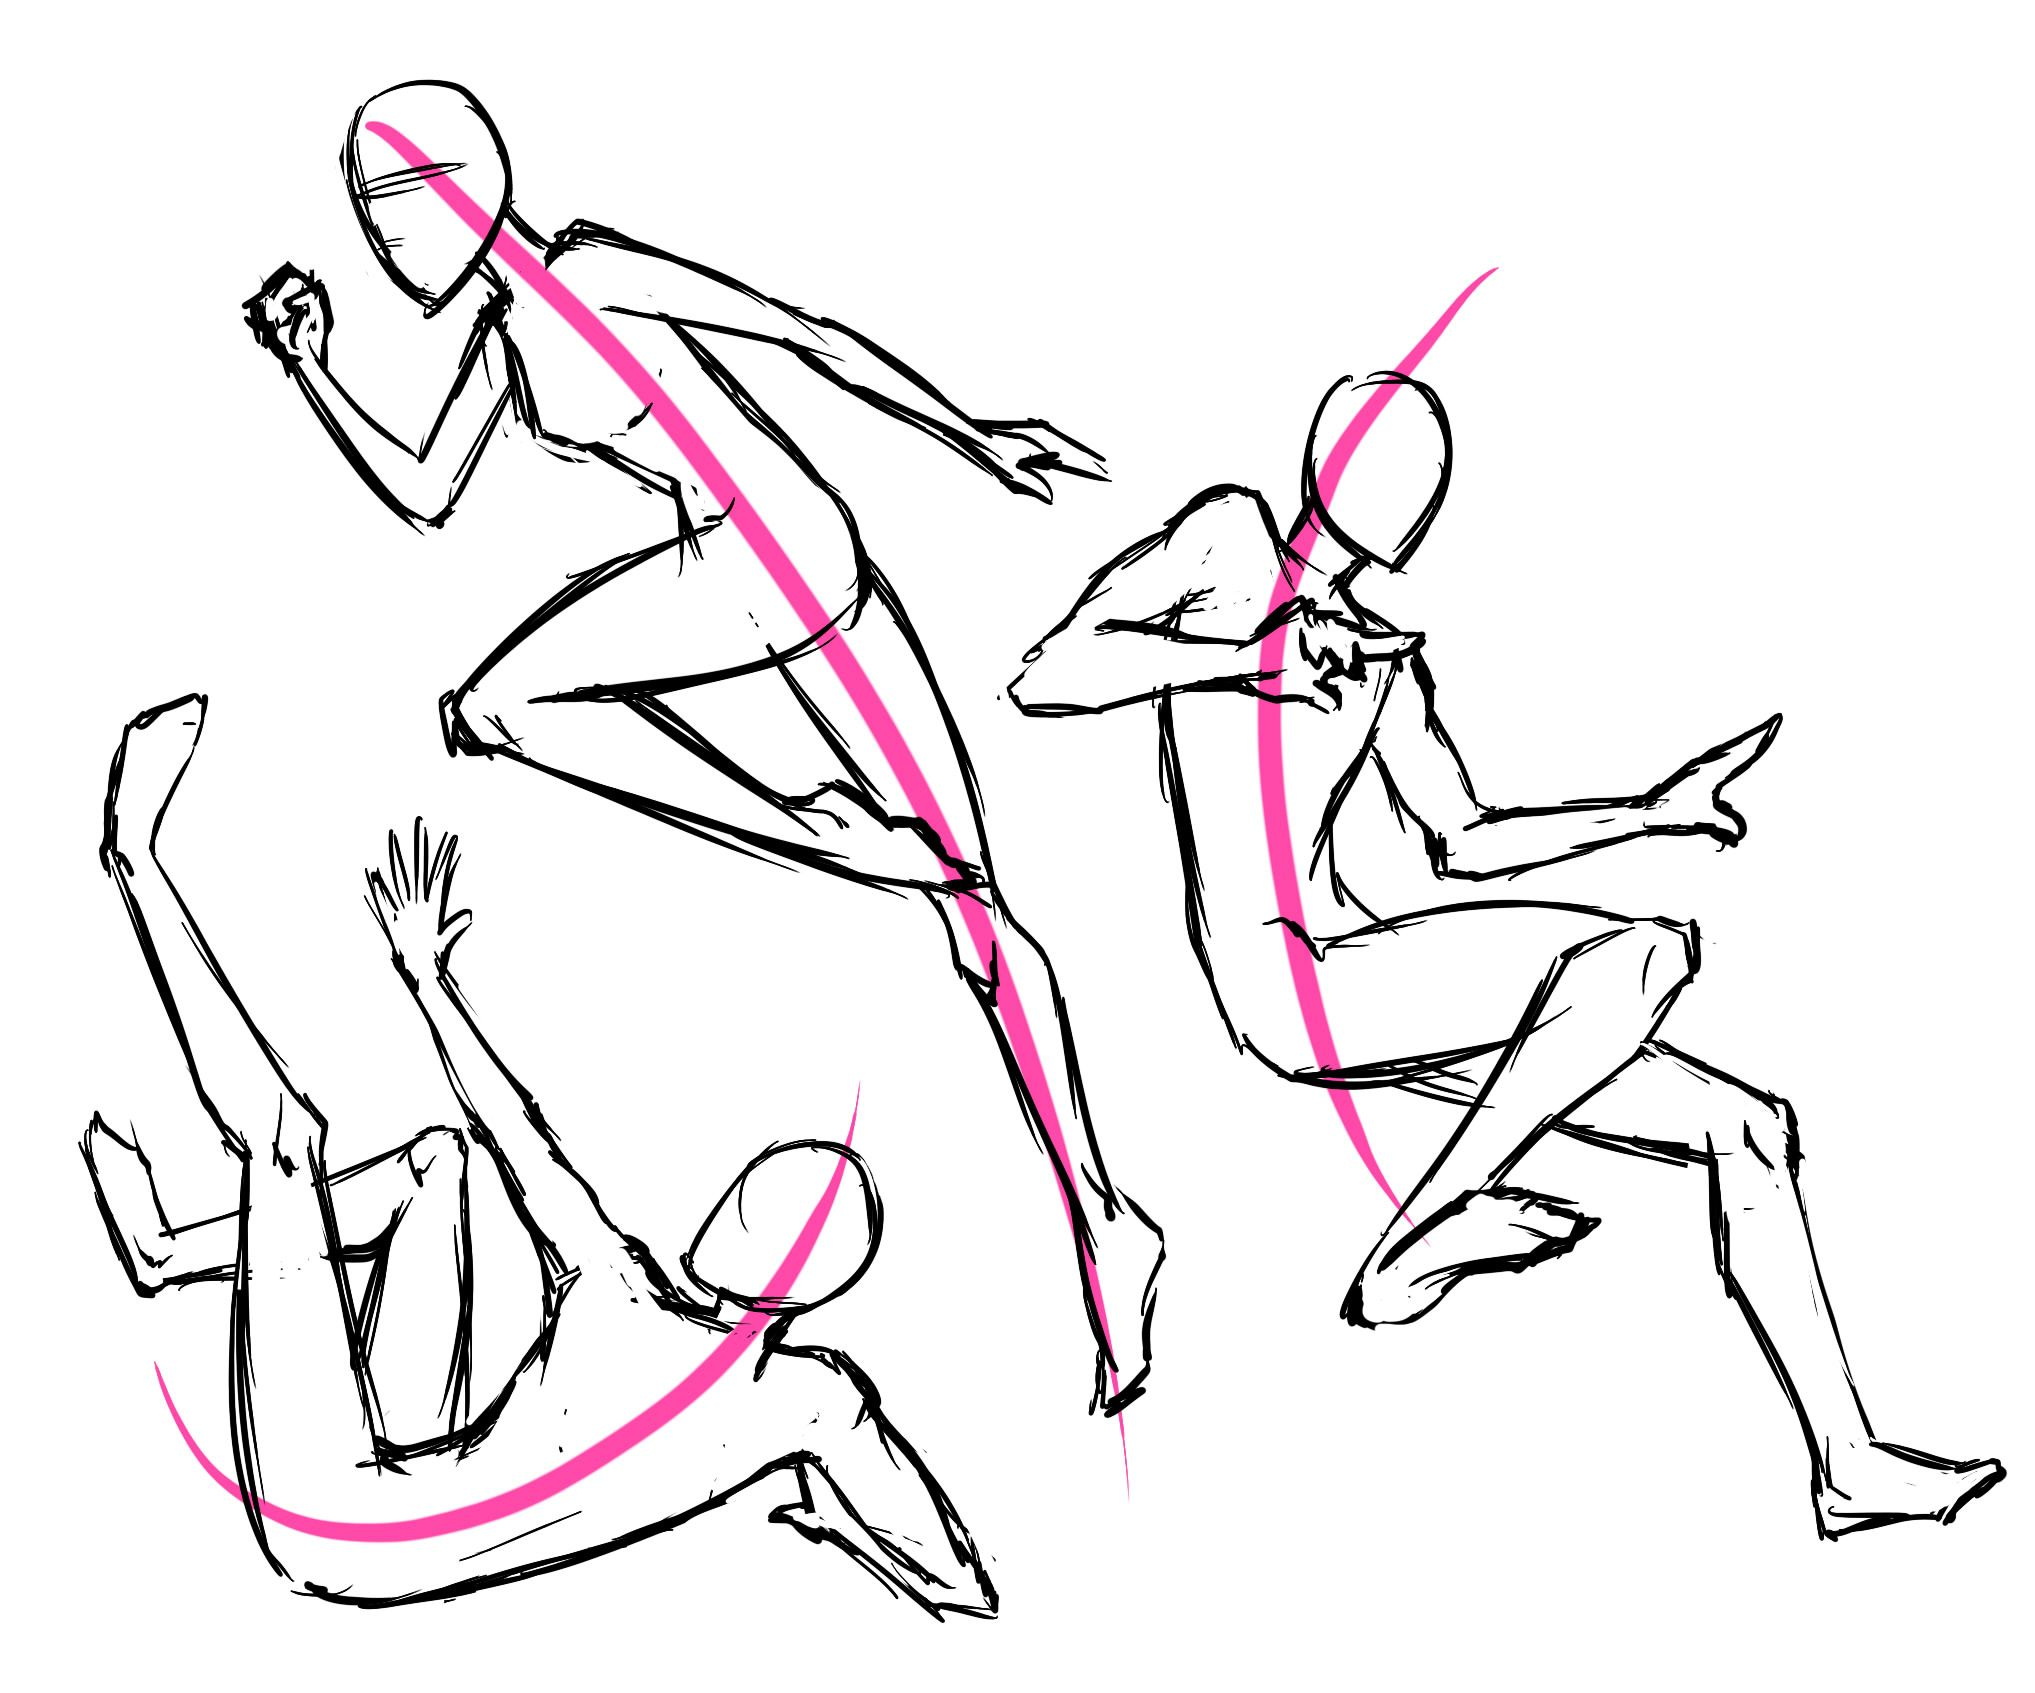 Manga Action Poses Letraset Blog Creative Opportunities Drawing Body Poses Art Reference Poses Drawing Reference Poses